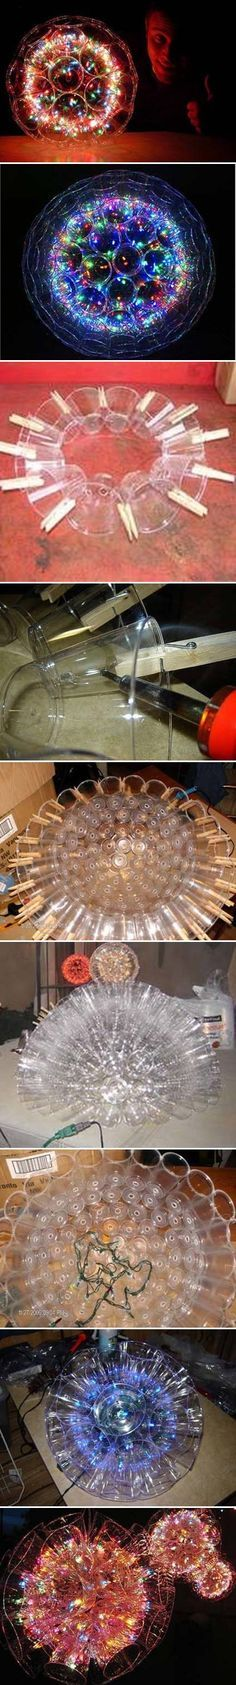 DIY Nice Plastic Cup Lamp...seems a bit tedious to accomplish but would look really cool for New Years or a birthday?